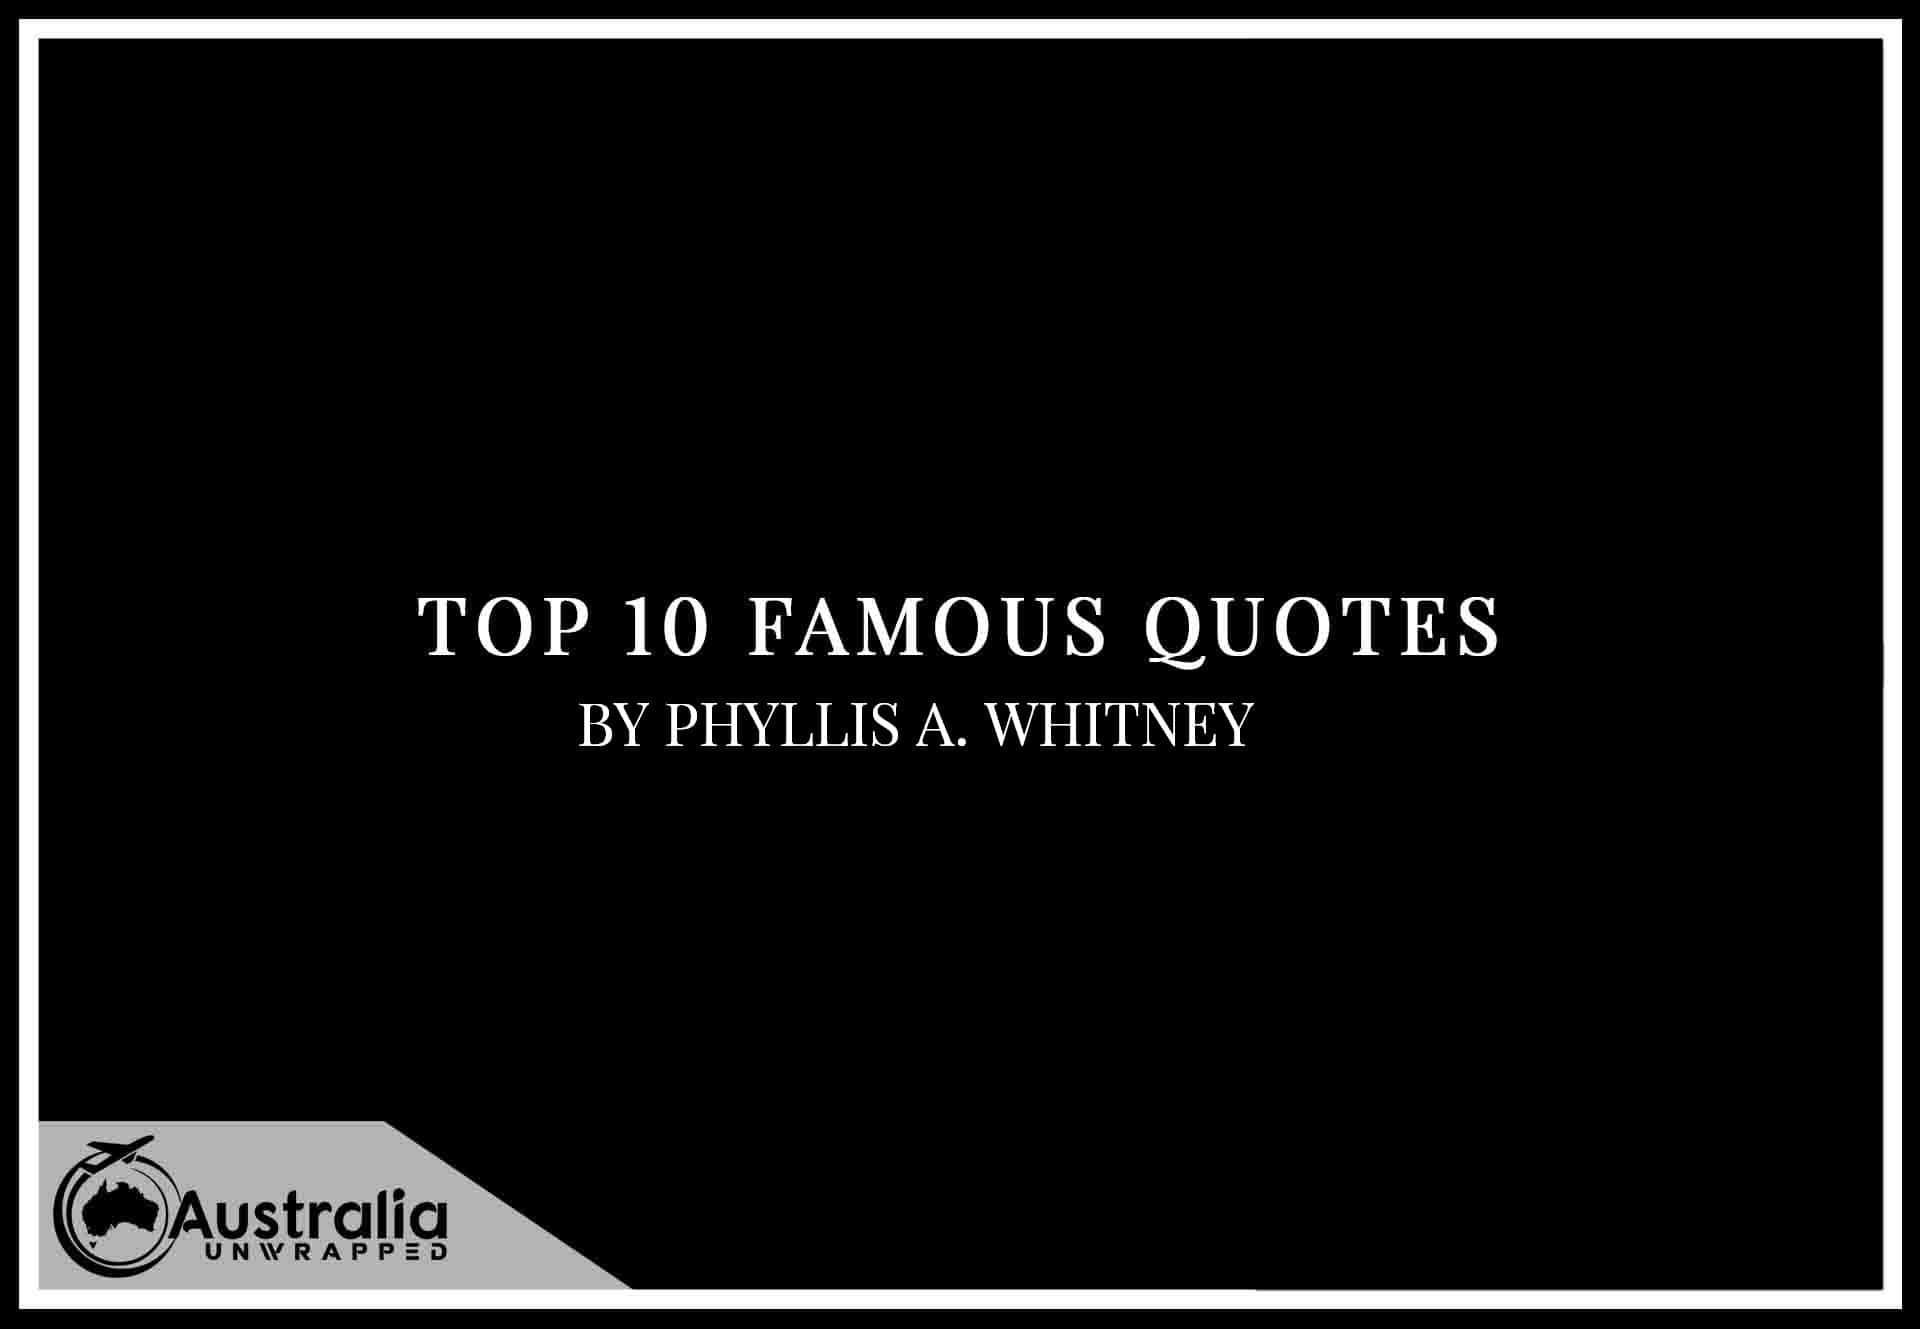 Top 10 Famous Quotes by Author Phyllis A. Whitney